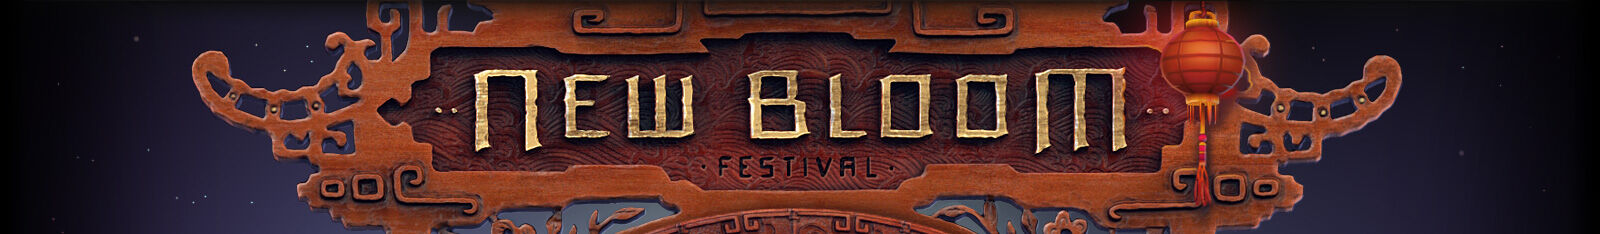 Banner New Bloom Festival 2014.jpg